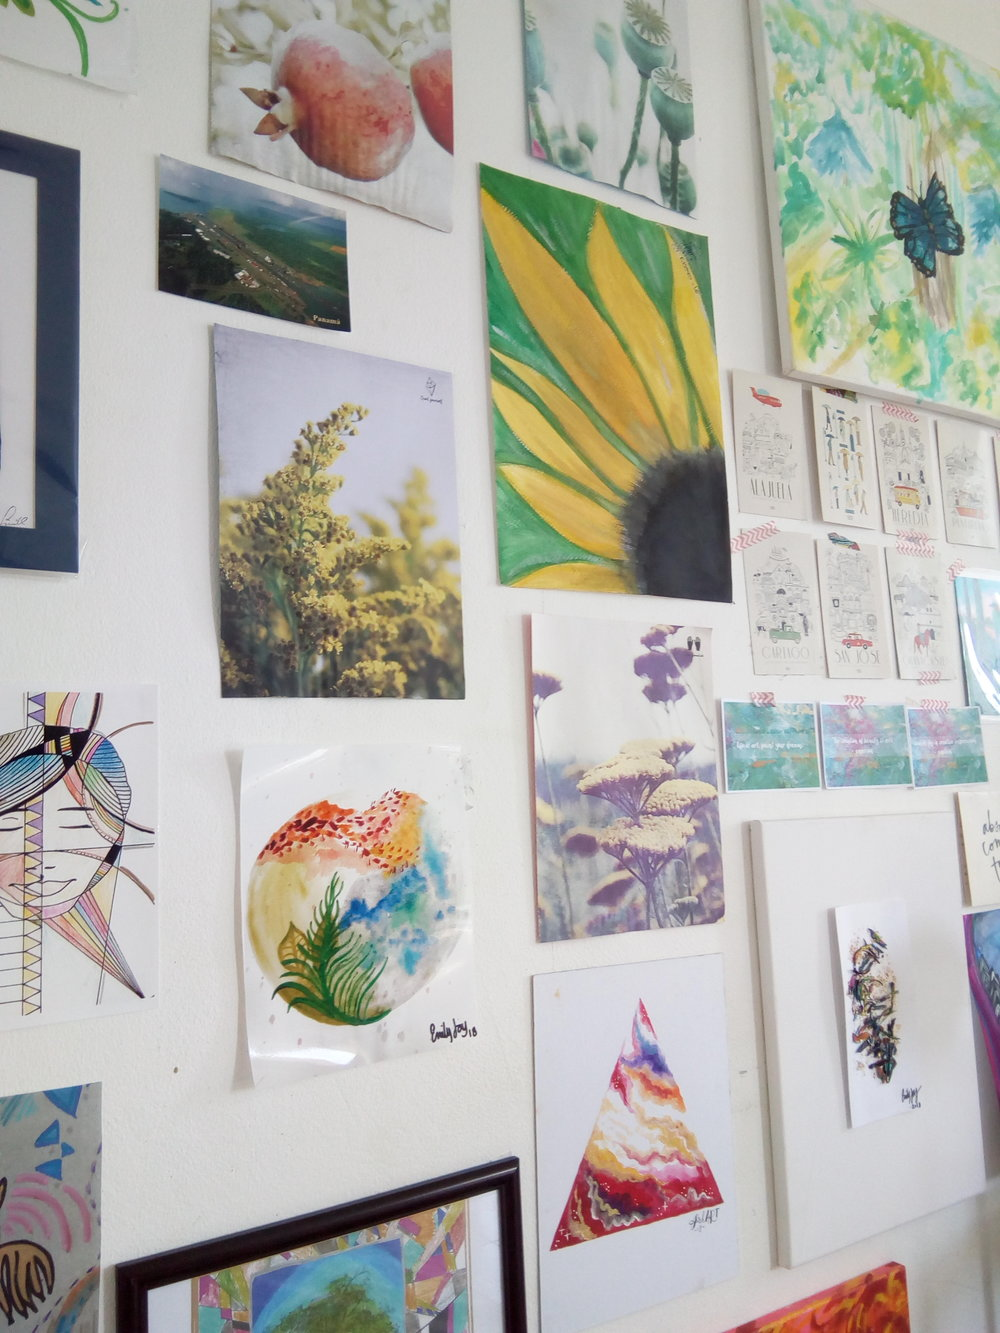 My Curated Collection: Gallery Wall of images I have been given, commissioned, made, found, bought, and students work from 2 017-2018